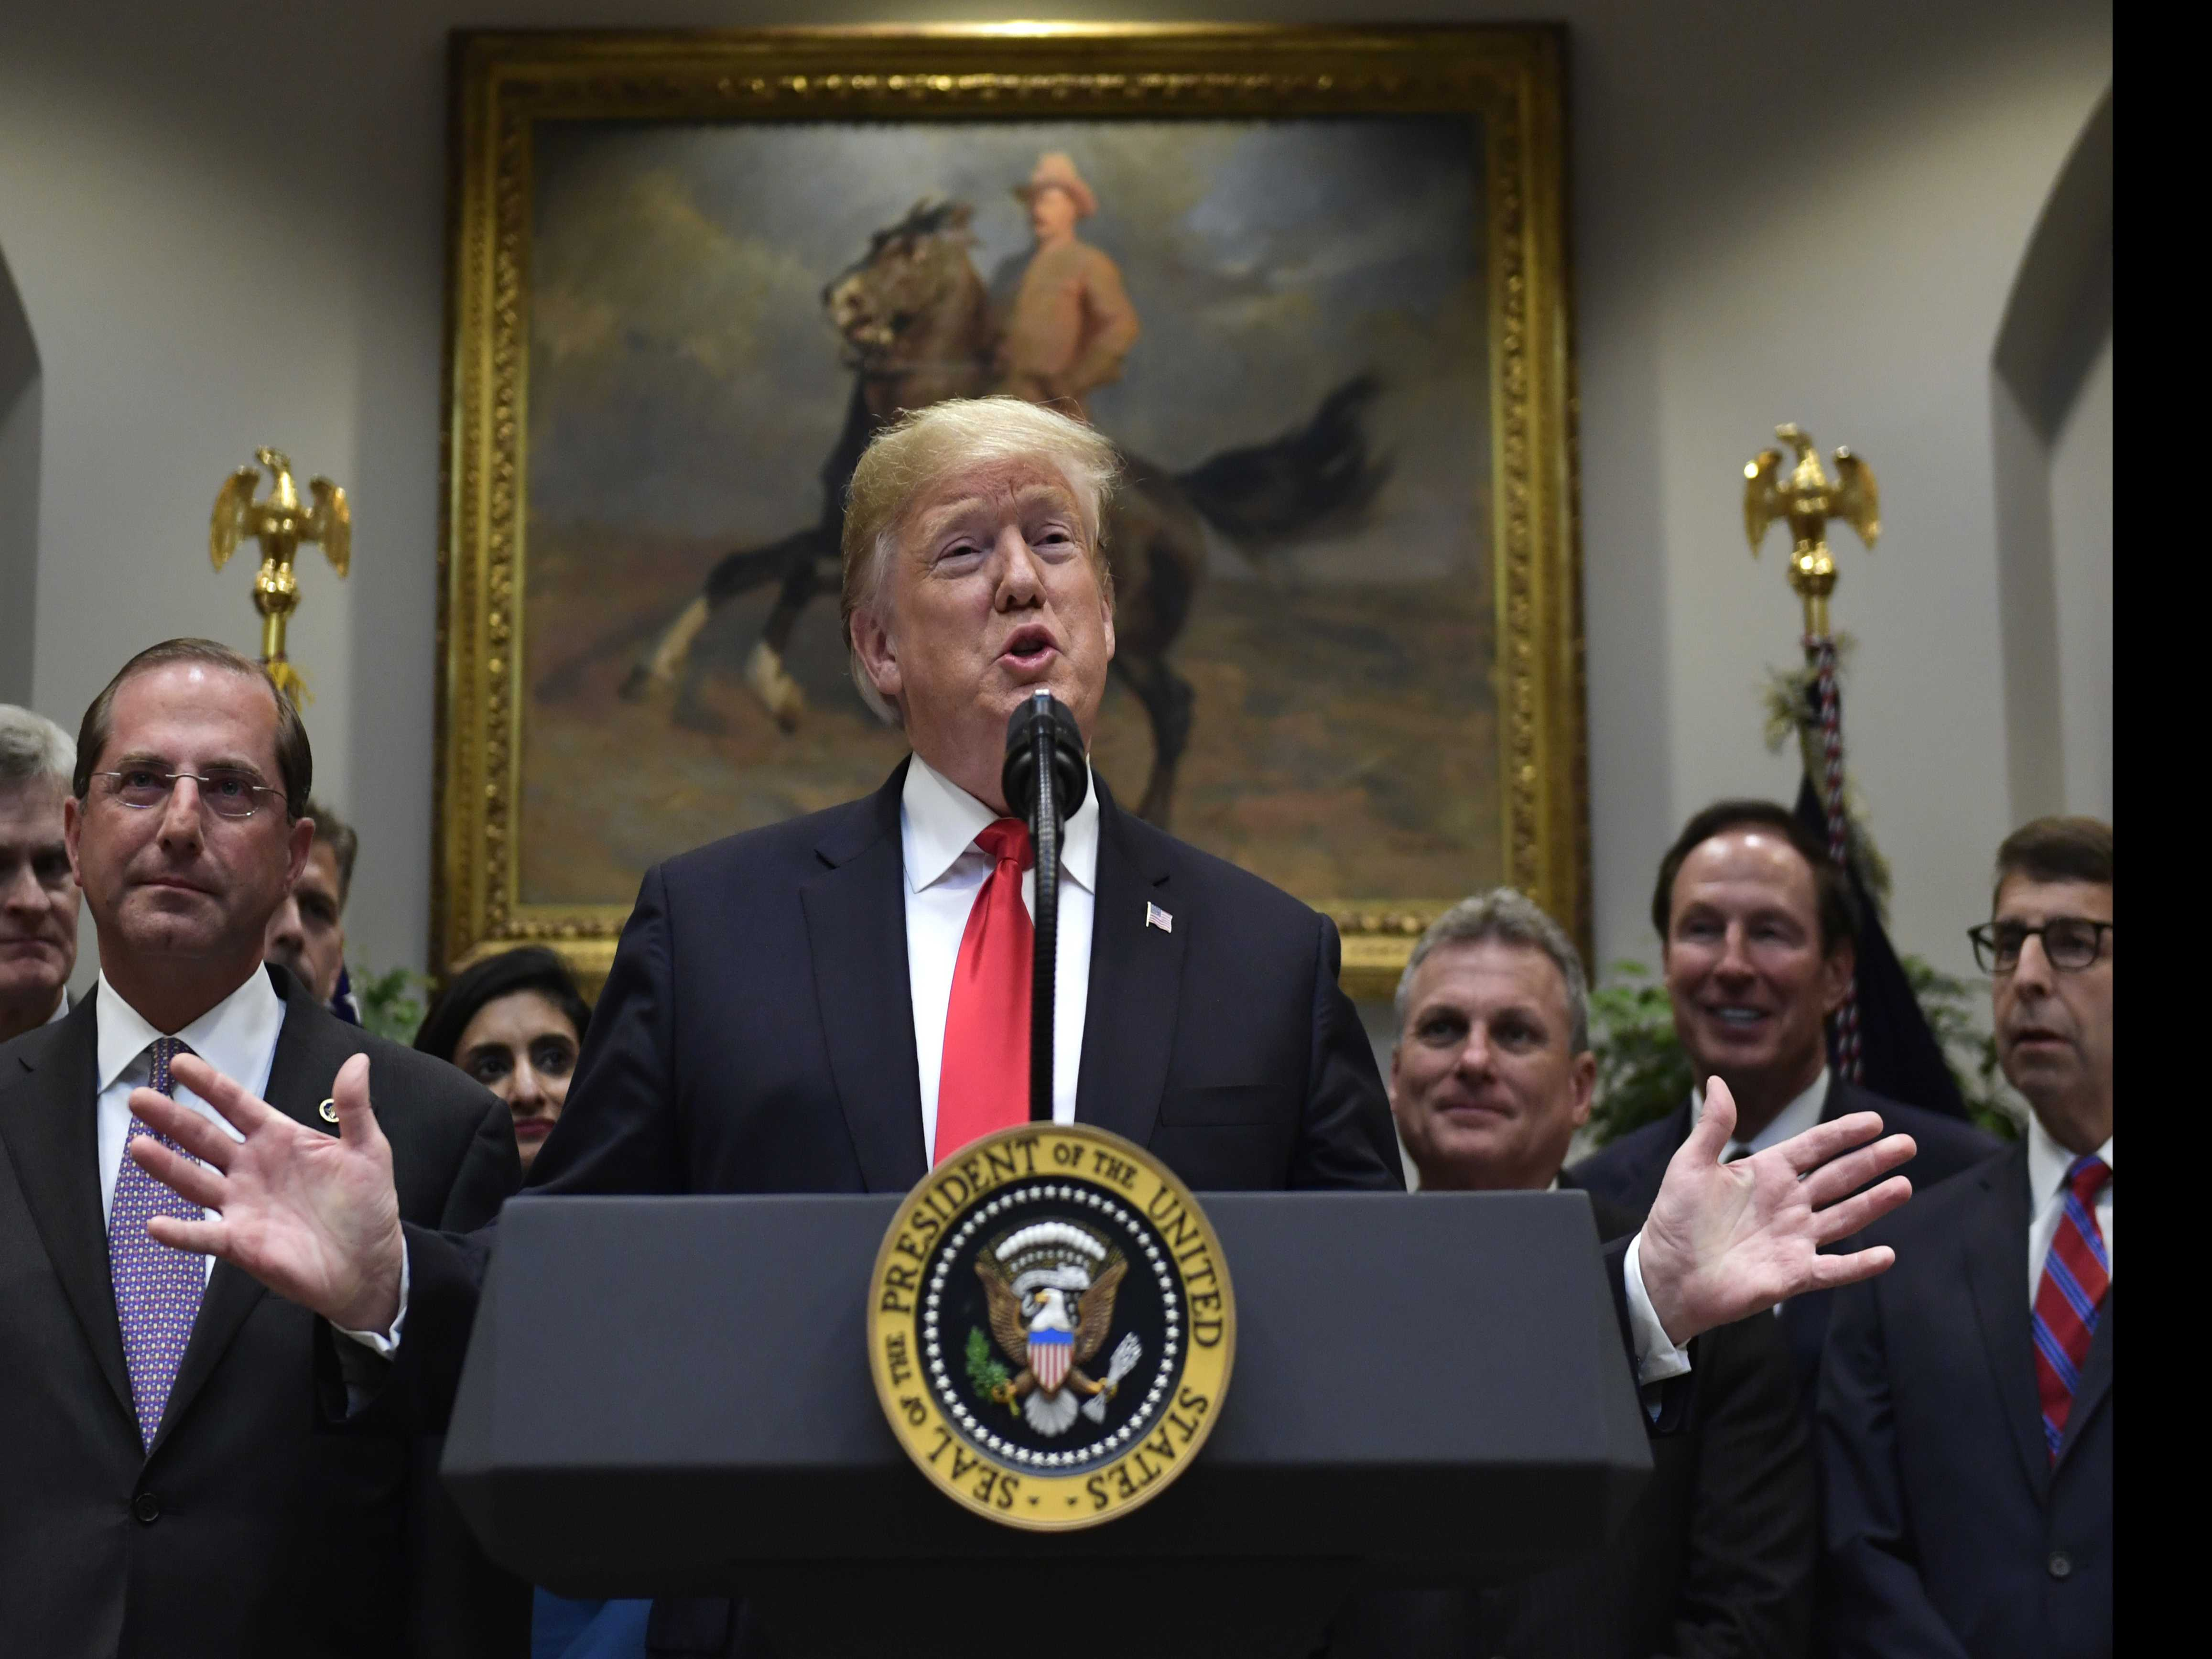 AP FACT CHECK: Trump's View of 'Medicare for All' Simplistic